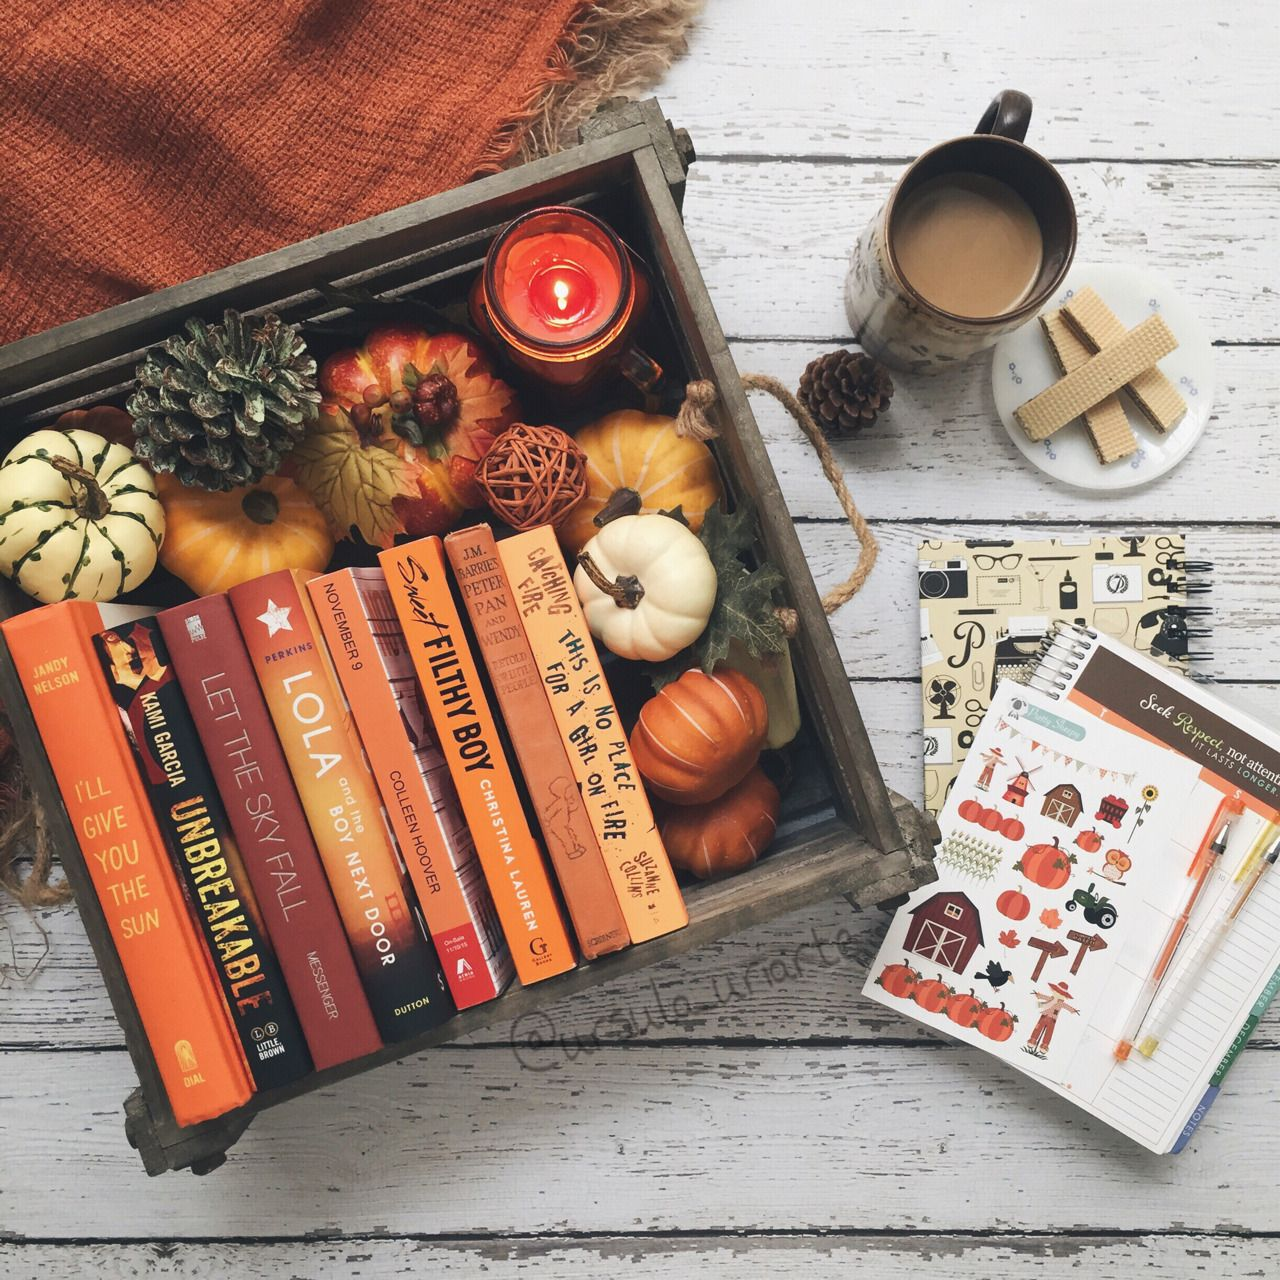 Ursula uriarte happy autumnal equinox so many books so little time pinterest autumnal for Pinterest cookbook